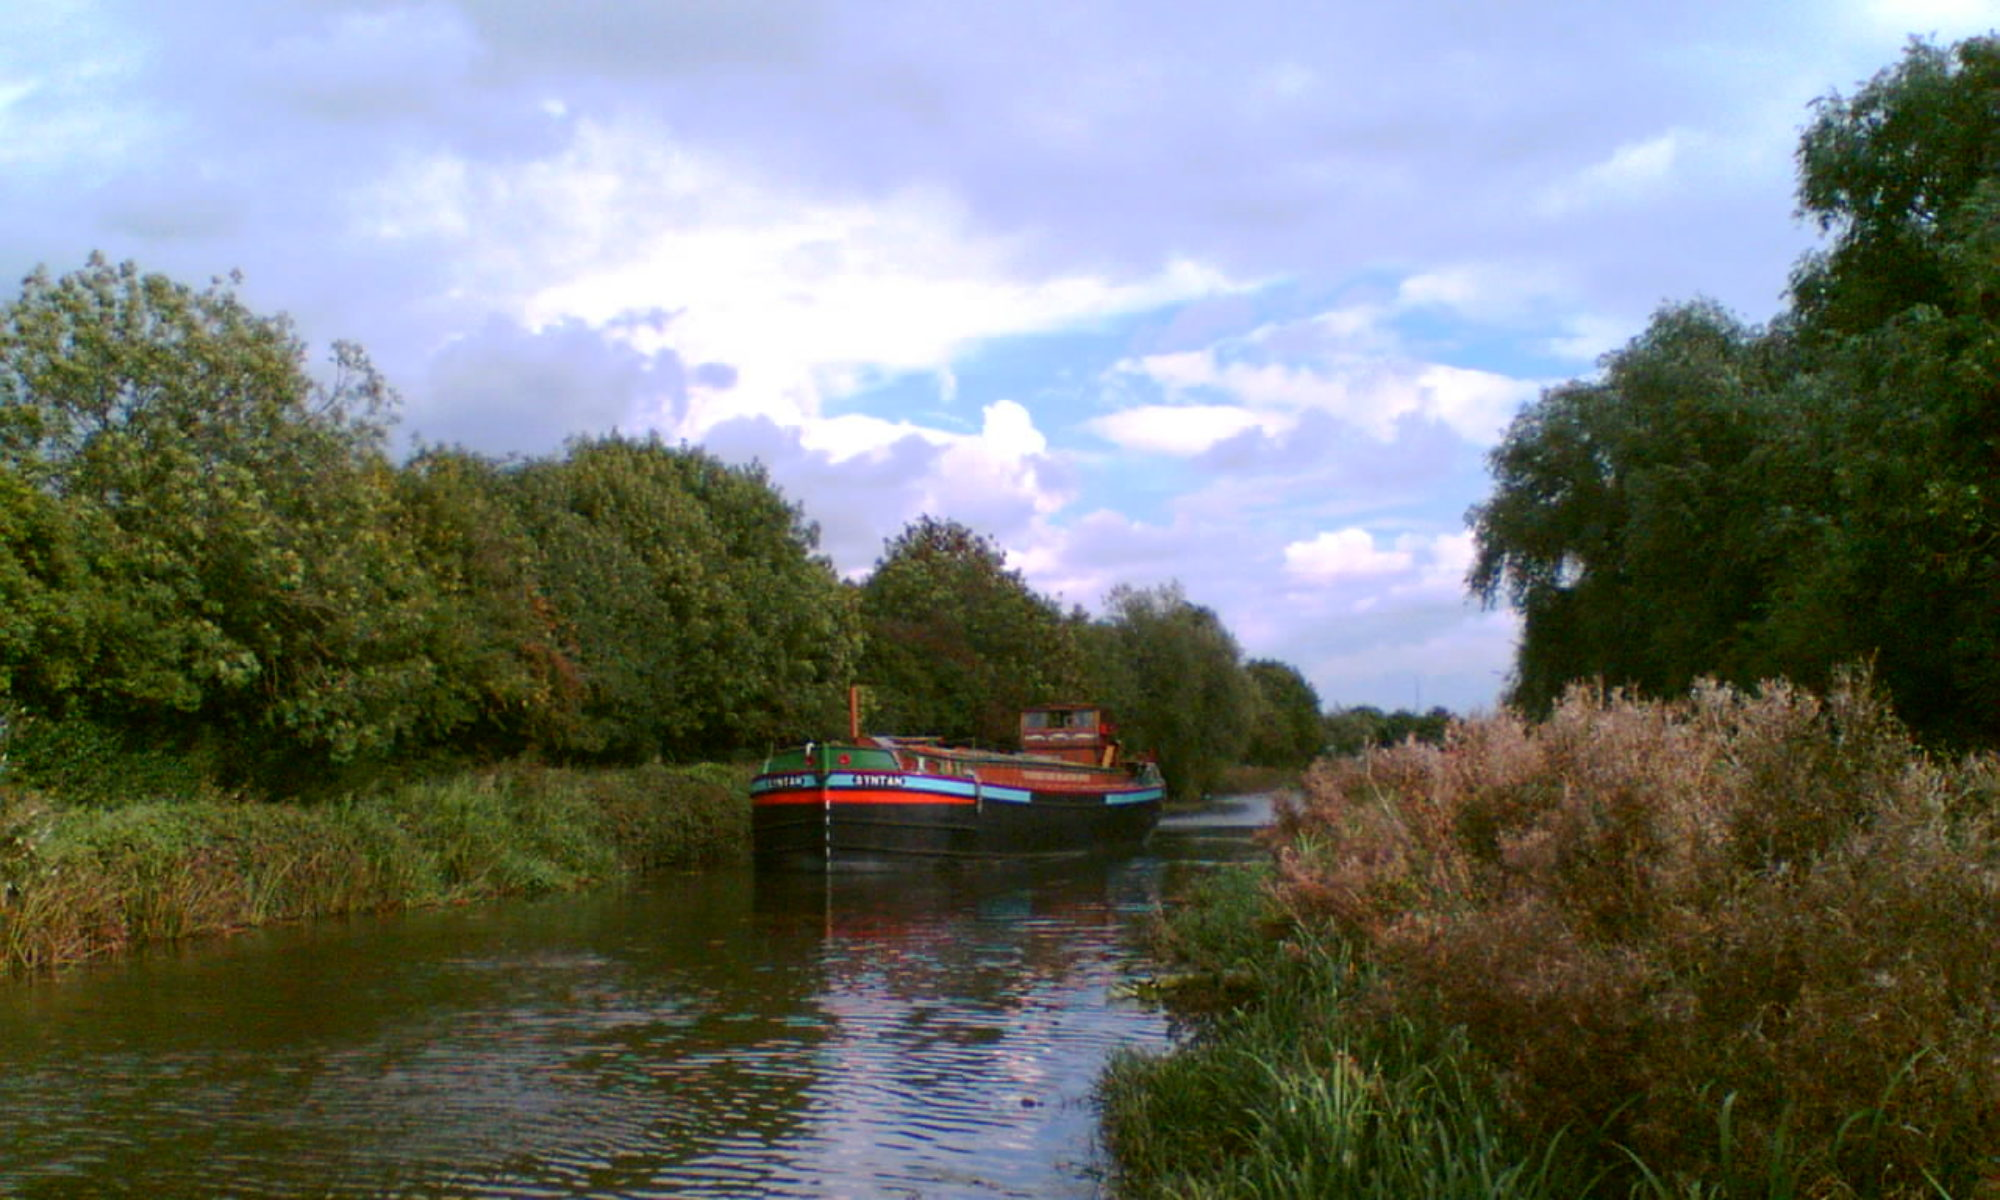 Beverley Beck Boating Association